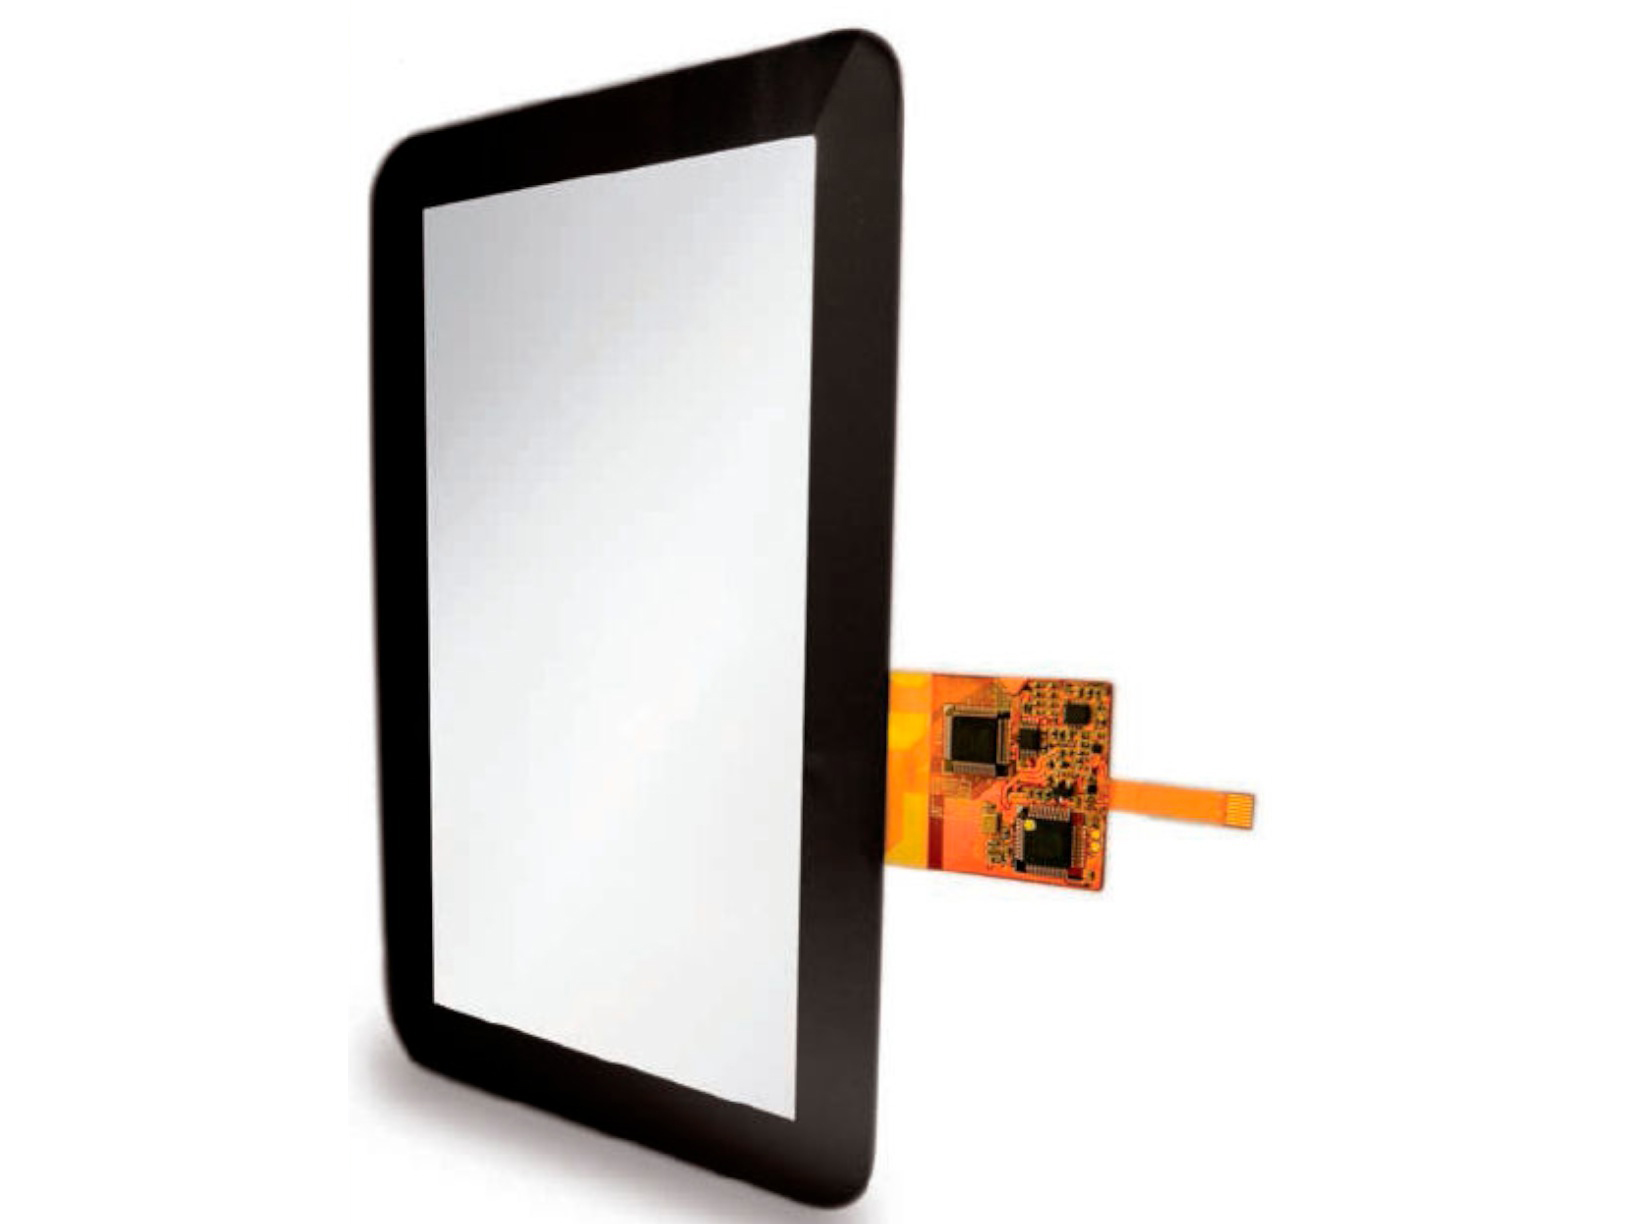 projected-capacitive-touch-screen5-RESIZED.jpg